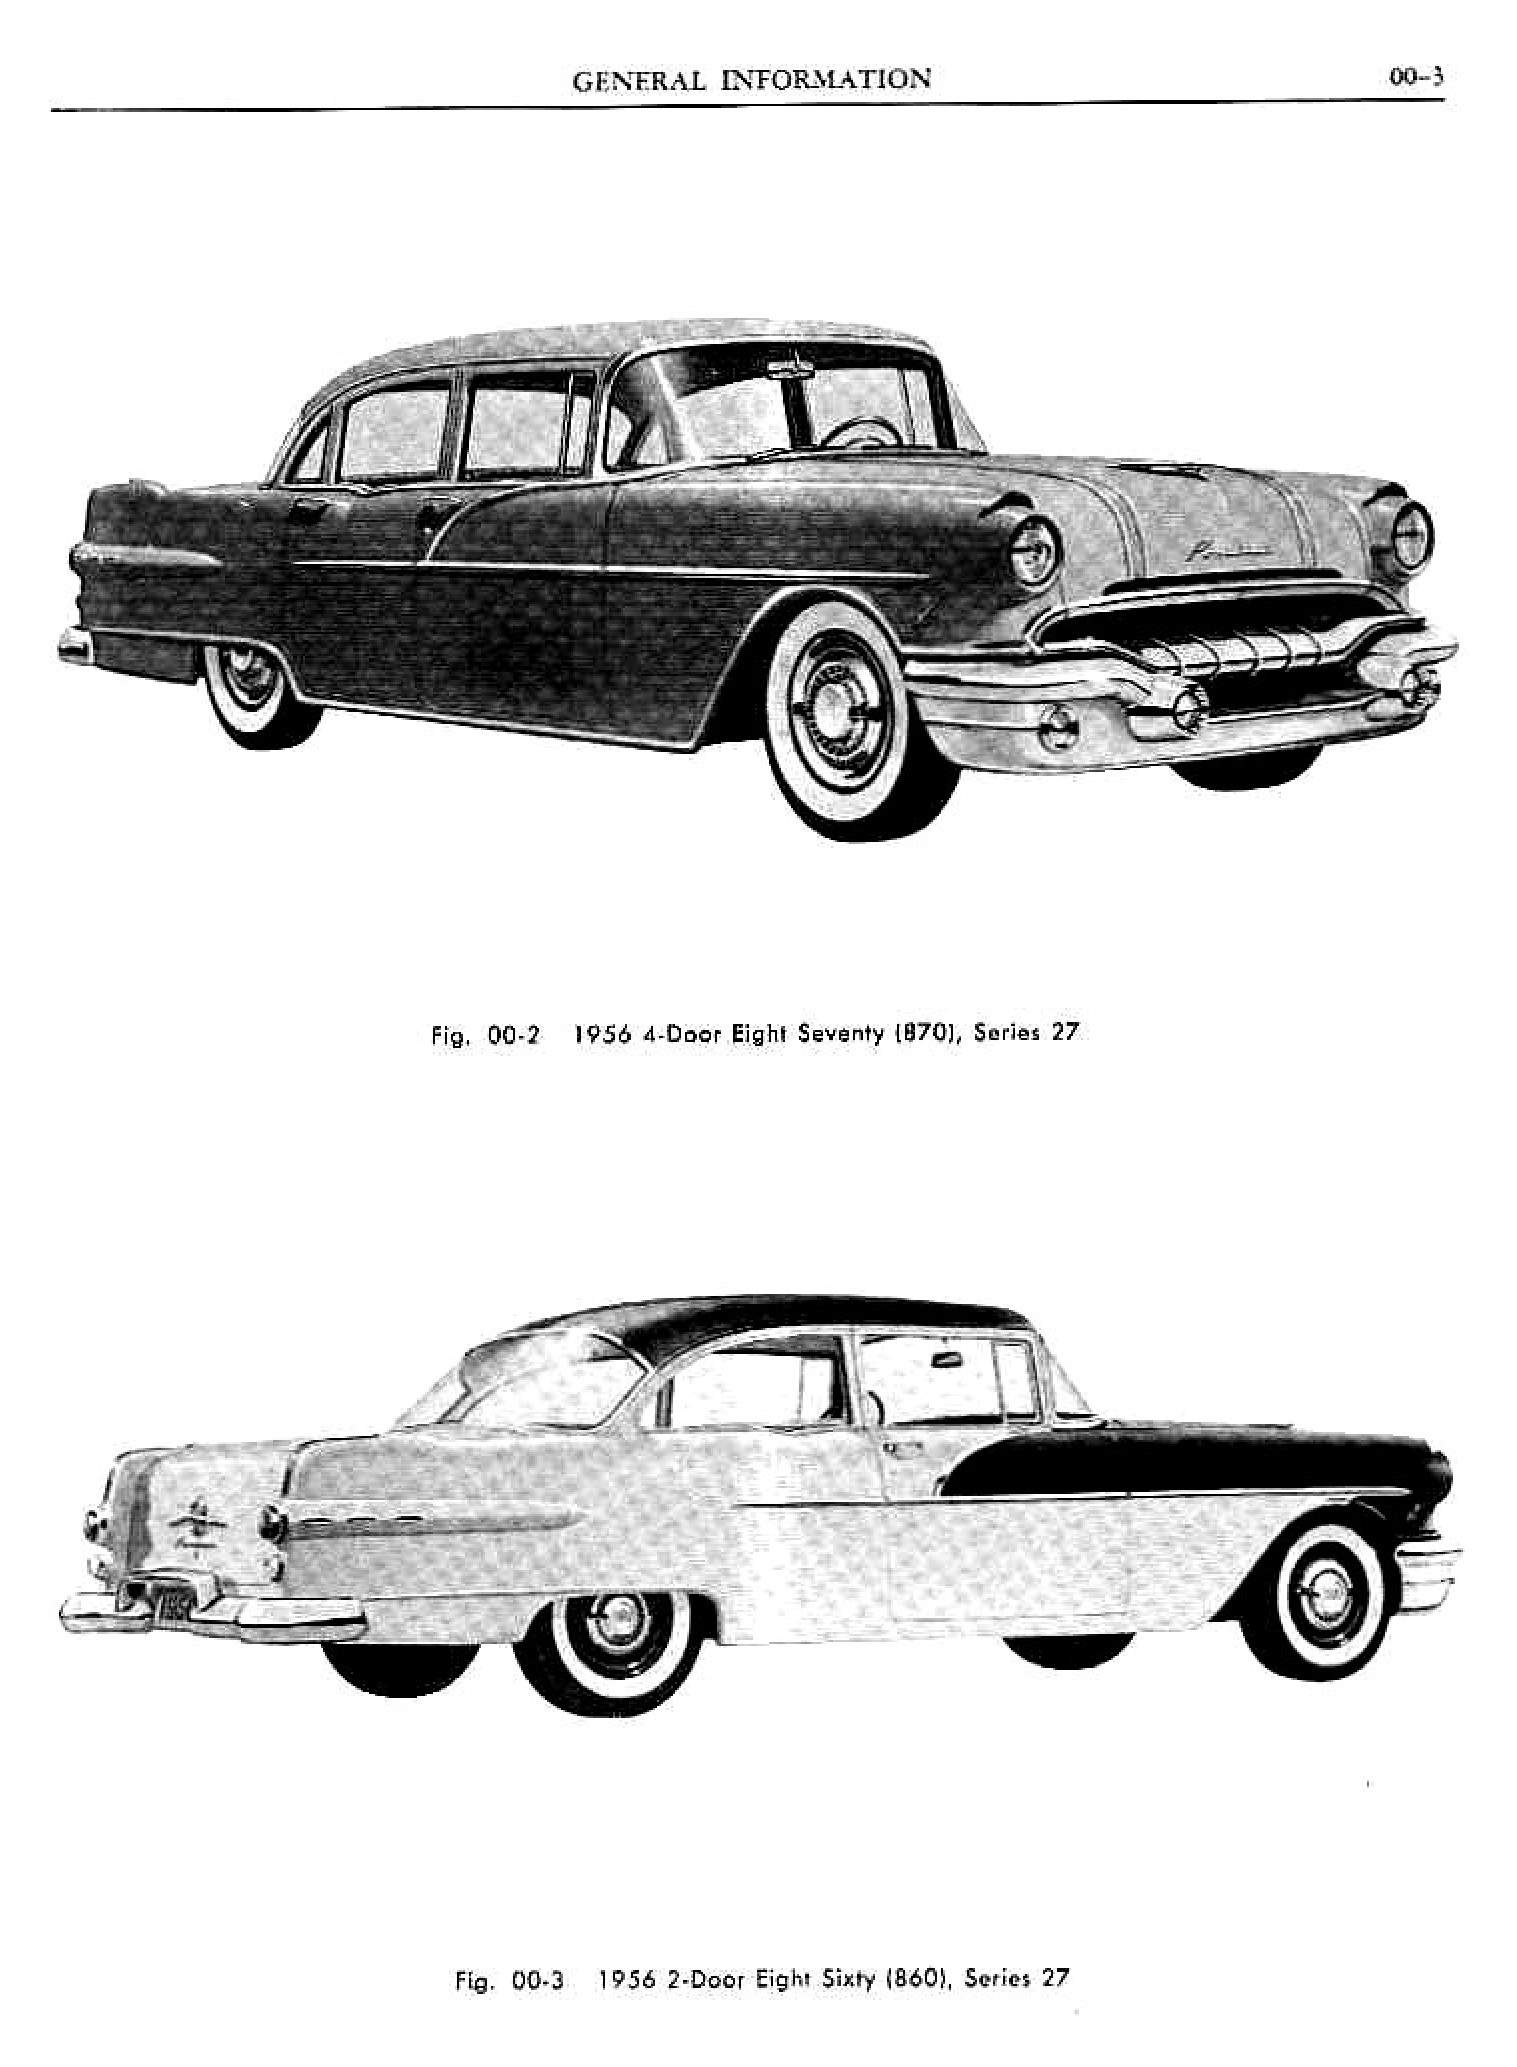 1956 Pontiac Shop Manual- Gen Information Page 3 of 6